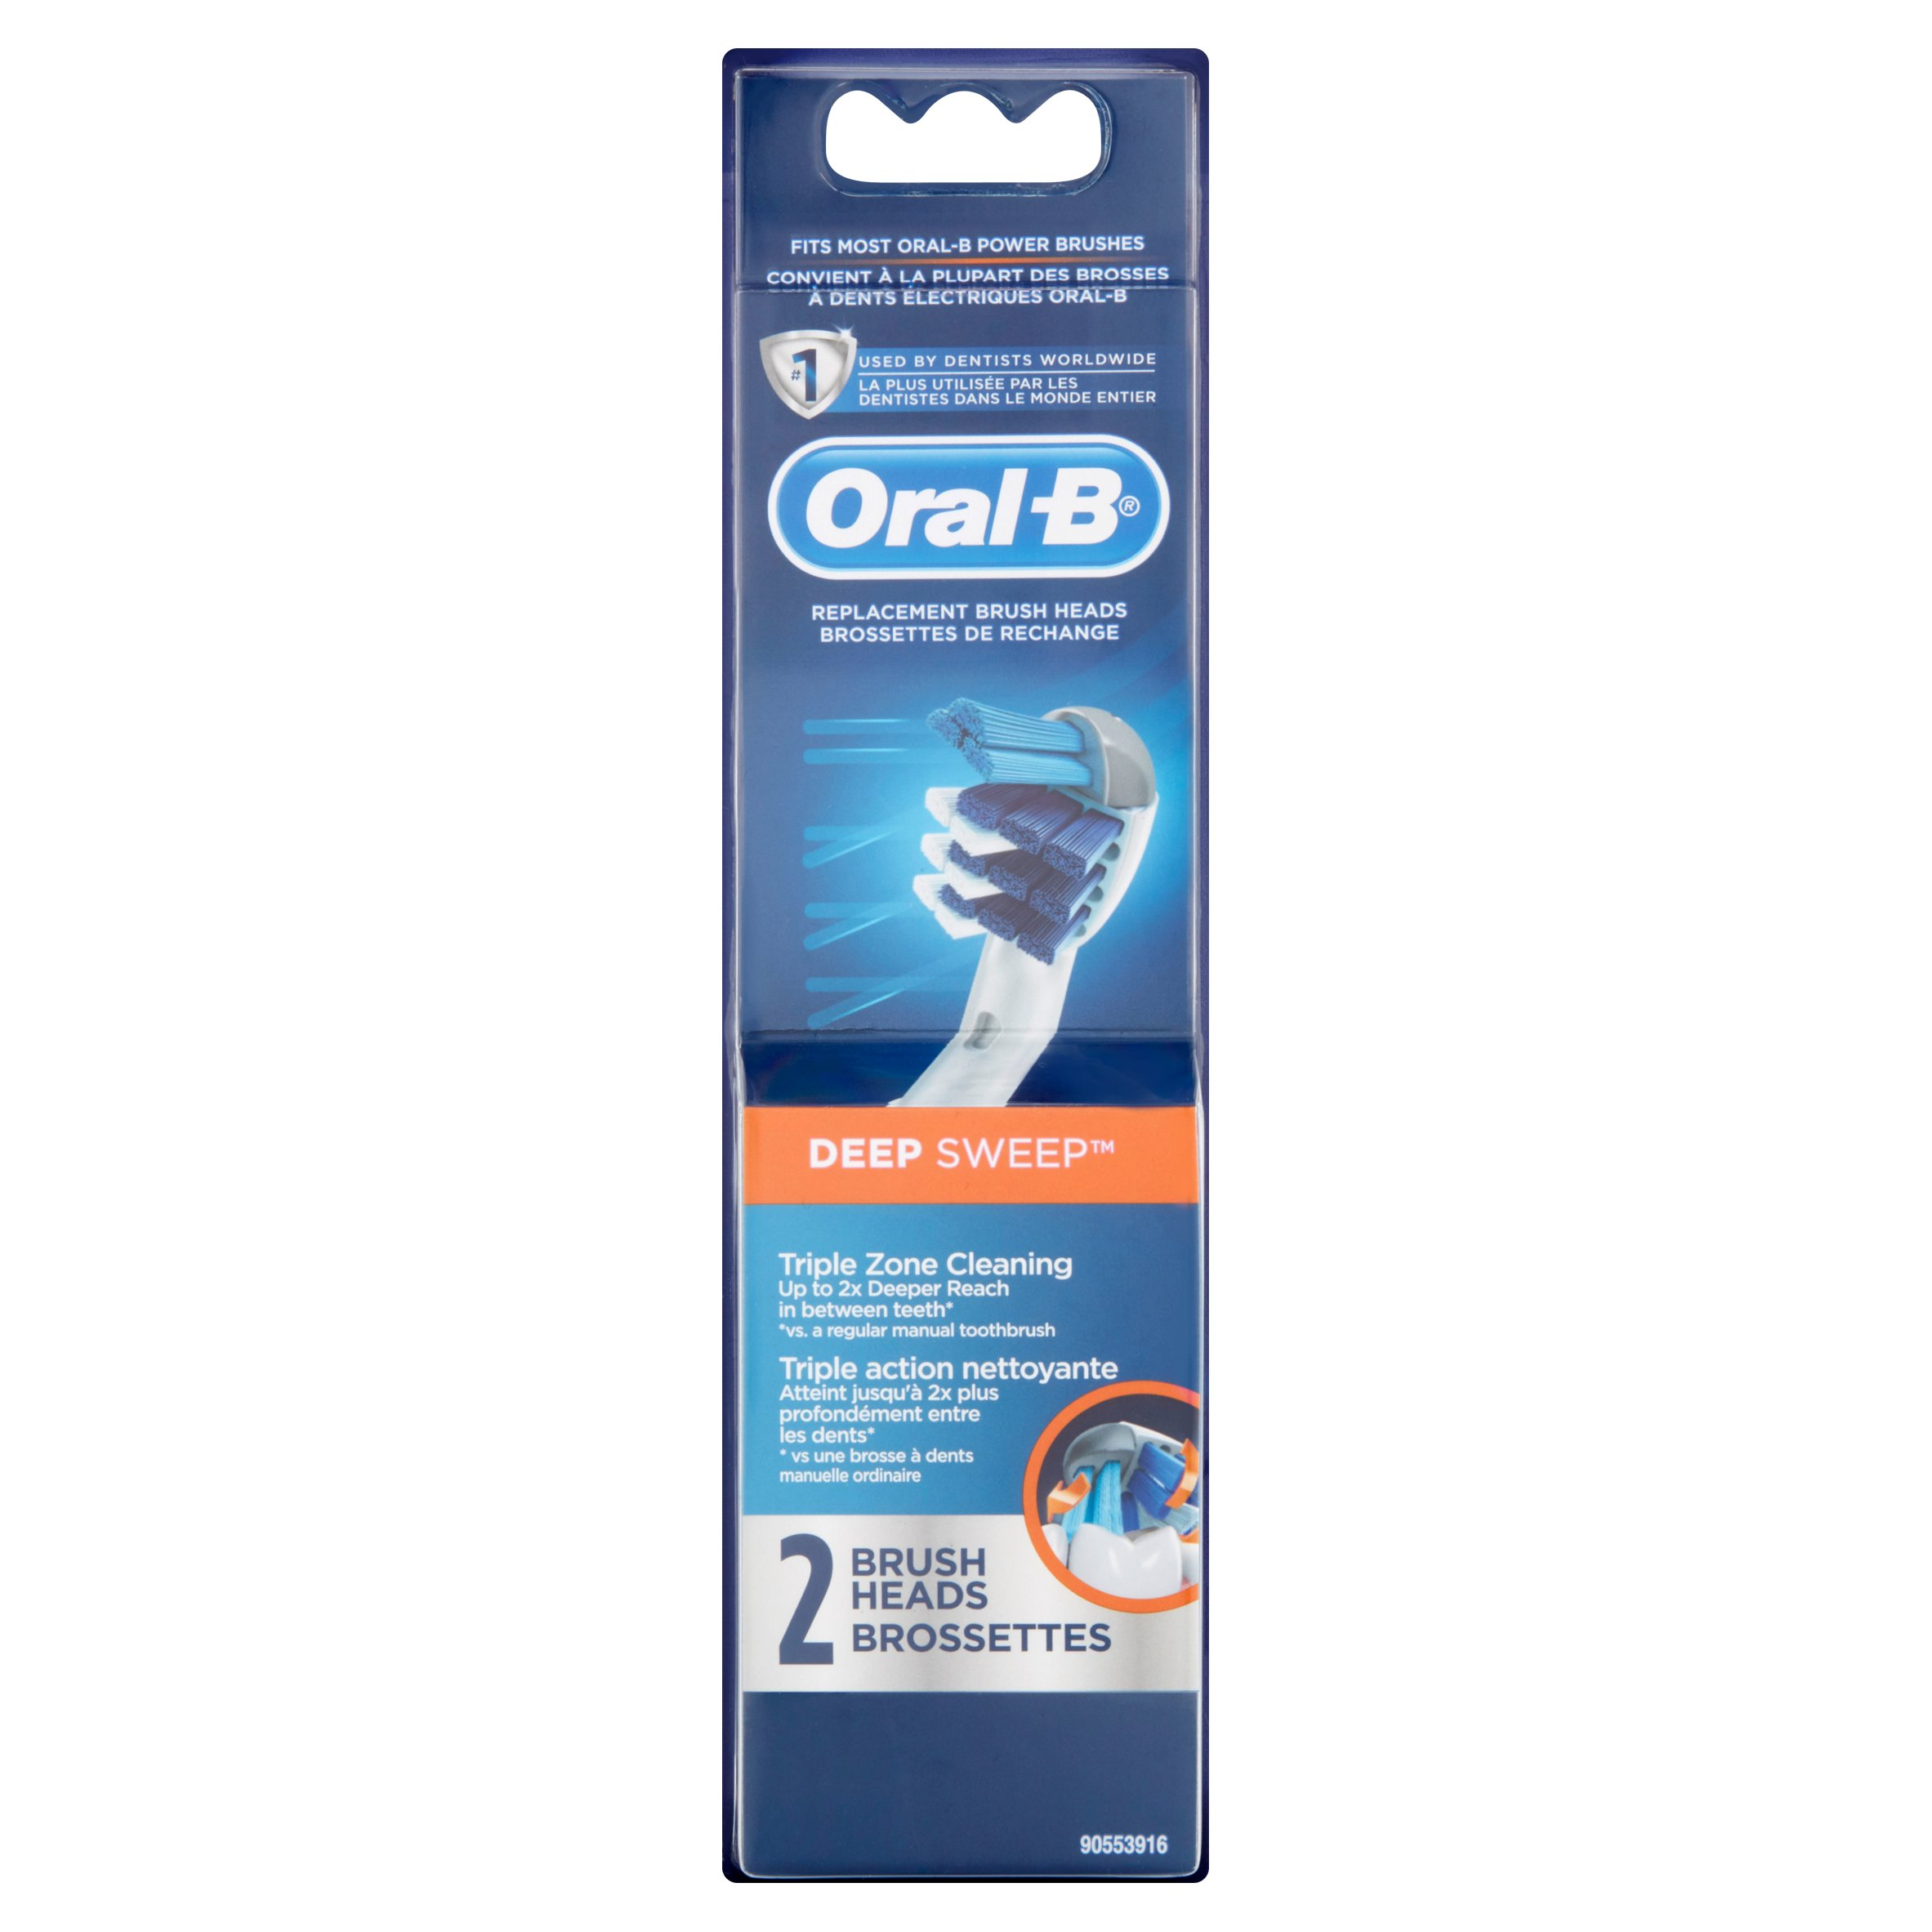 Oral-B Deep Sweep Replacement Toothbrush Heads, 2 count